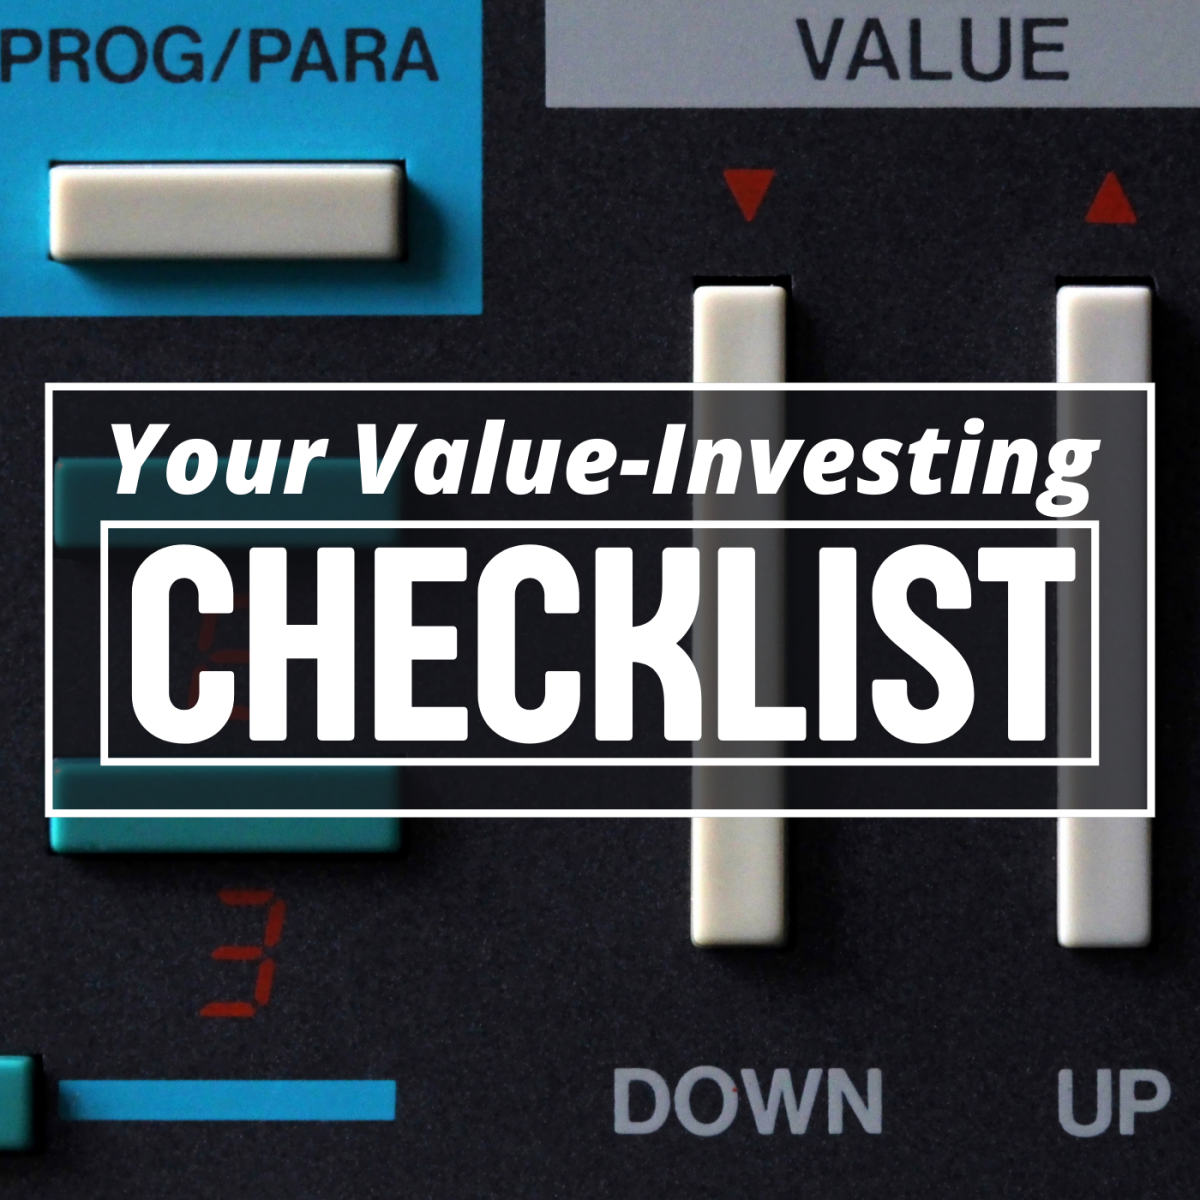 Follow a simple checklist every time you consider a stock, and you'll make far fewer mistakes!